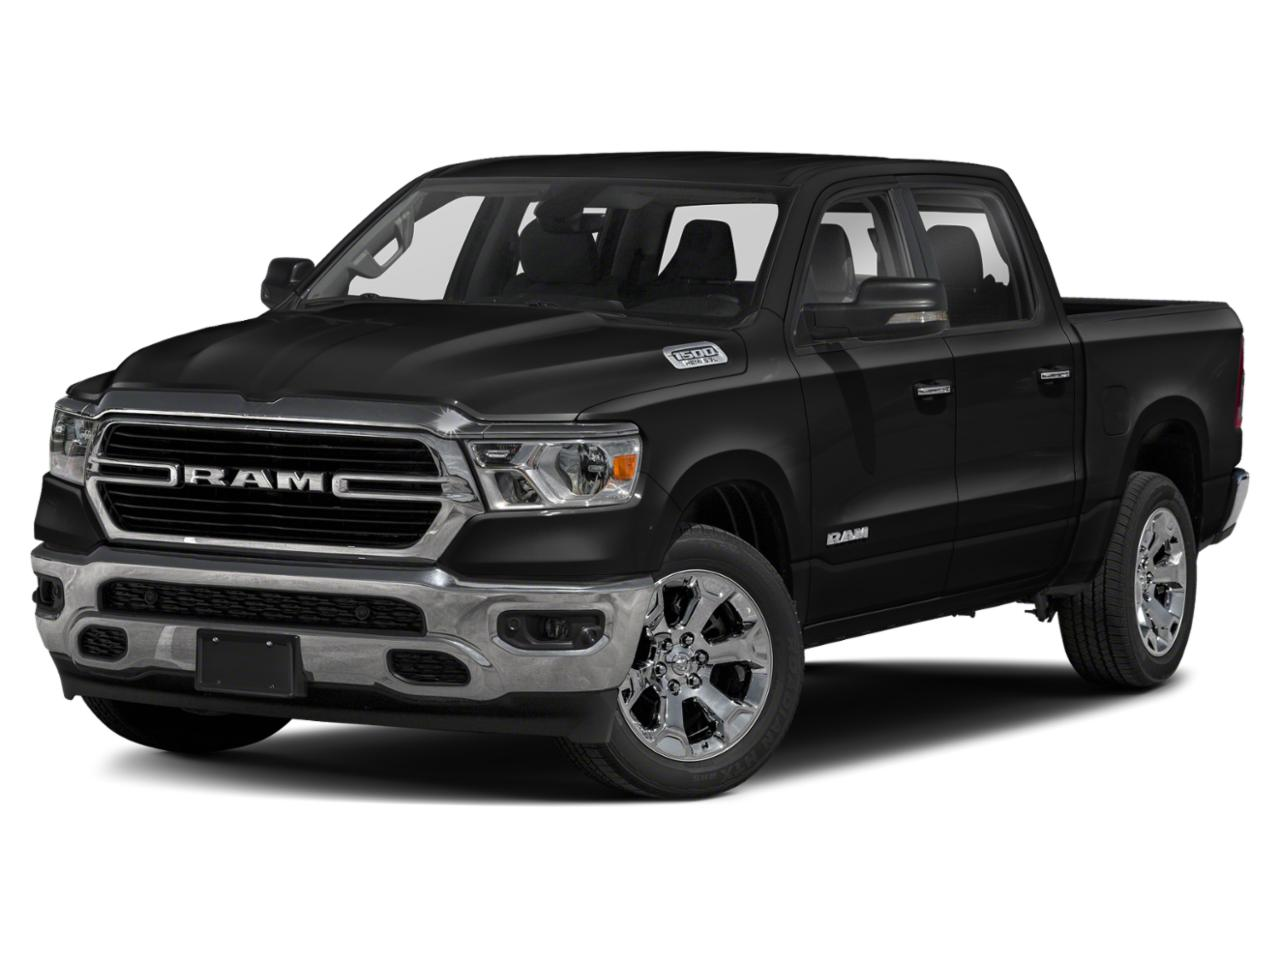 2021 Ram 1500 Vehicle Photo in Oshkosh, WI 54901